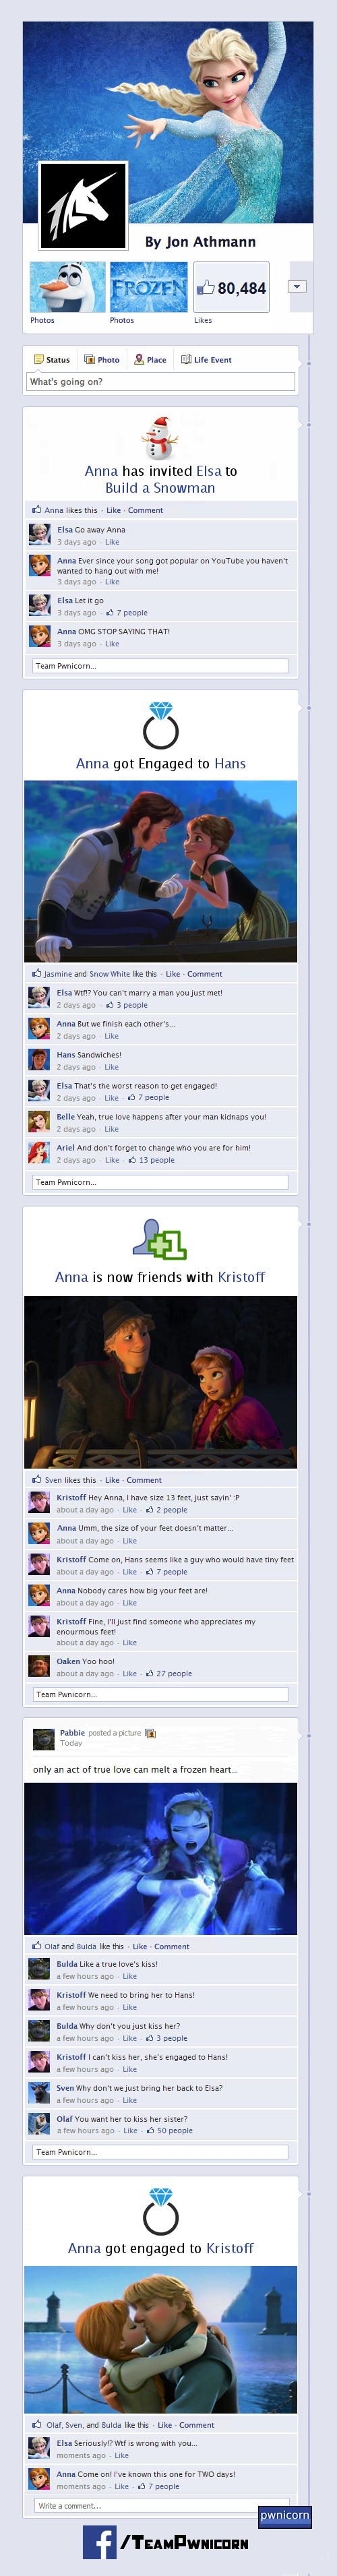 Frozen told through facebook from team pwnicorn and funny or die voltagebd Images